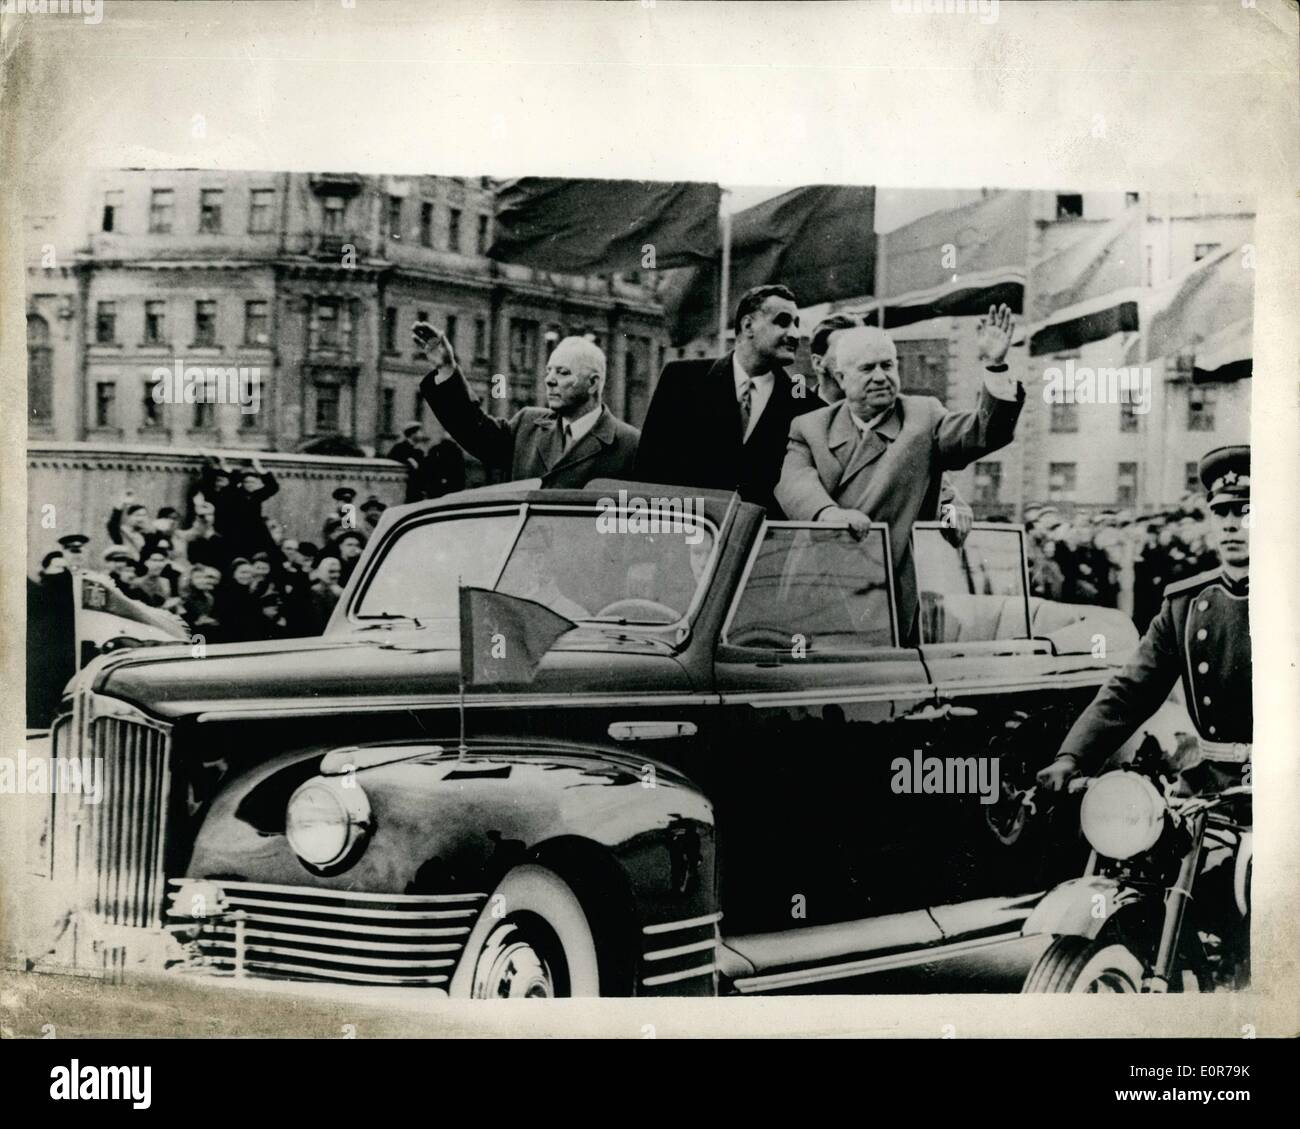 May 05, 1958 - President Nasser Arrives In Moscow; Photo Shows Gamal Abdel Nasser, President of the United Republic - Stock Image